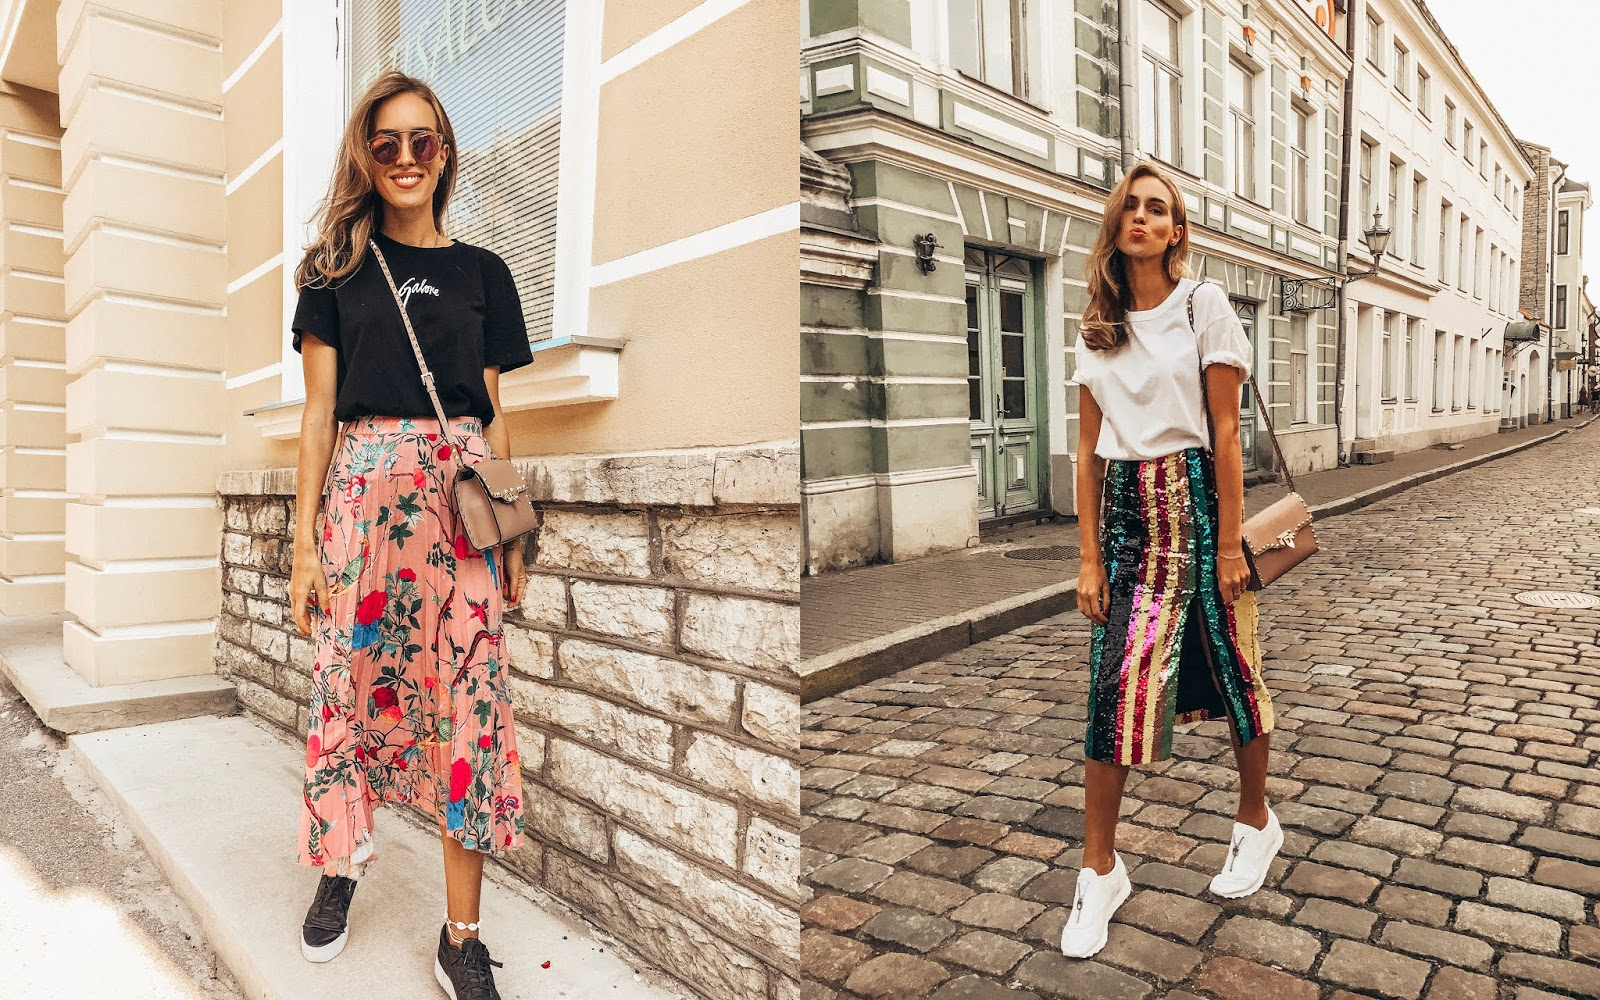 tshirt midi skirt sneakers outfit summer street style